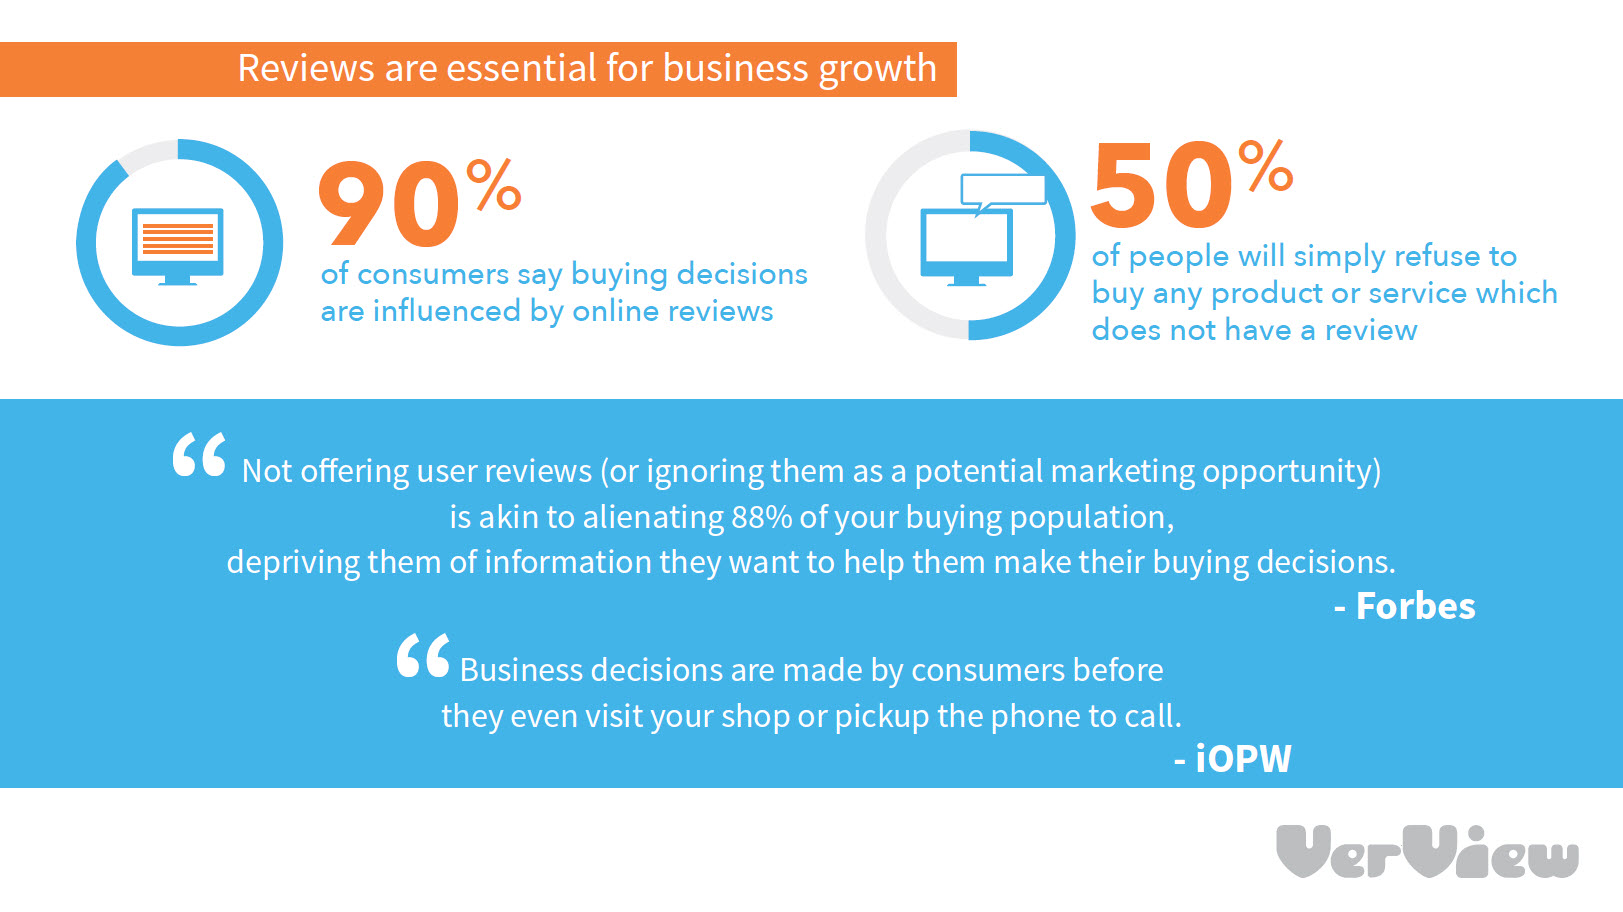 How Important Are Reviews To Your Business?